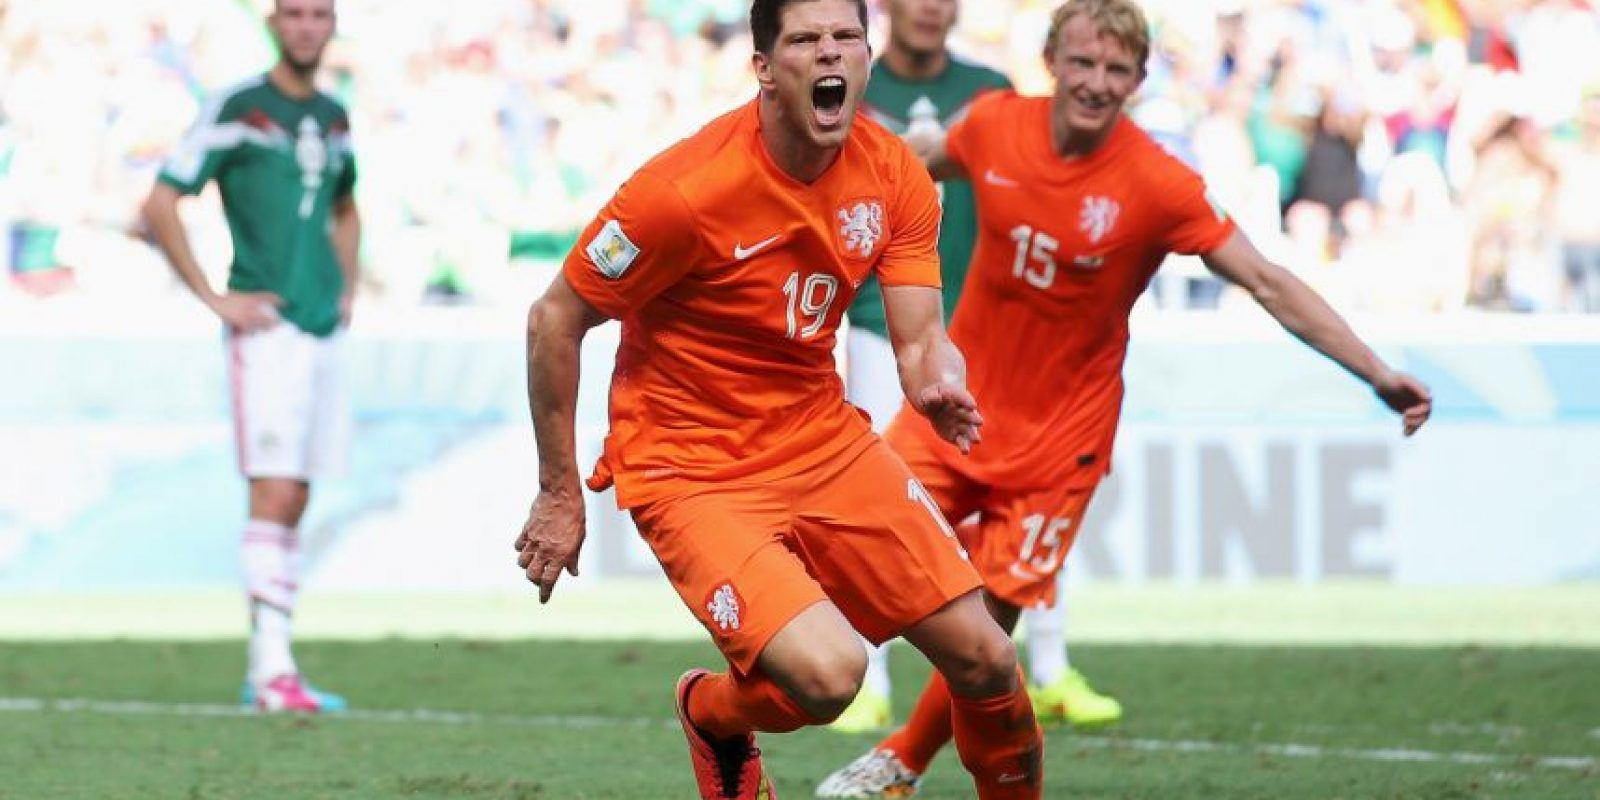 El penal de la victoria holandesa lo anotó Klaas Jan Huntelaar Foto: Getty